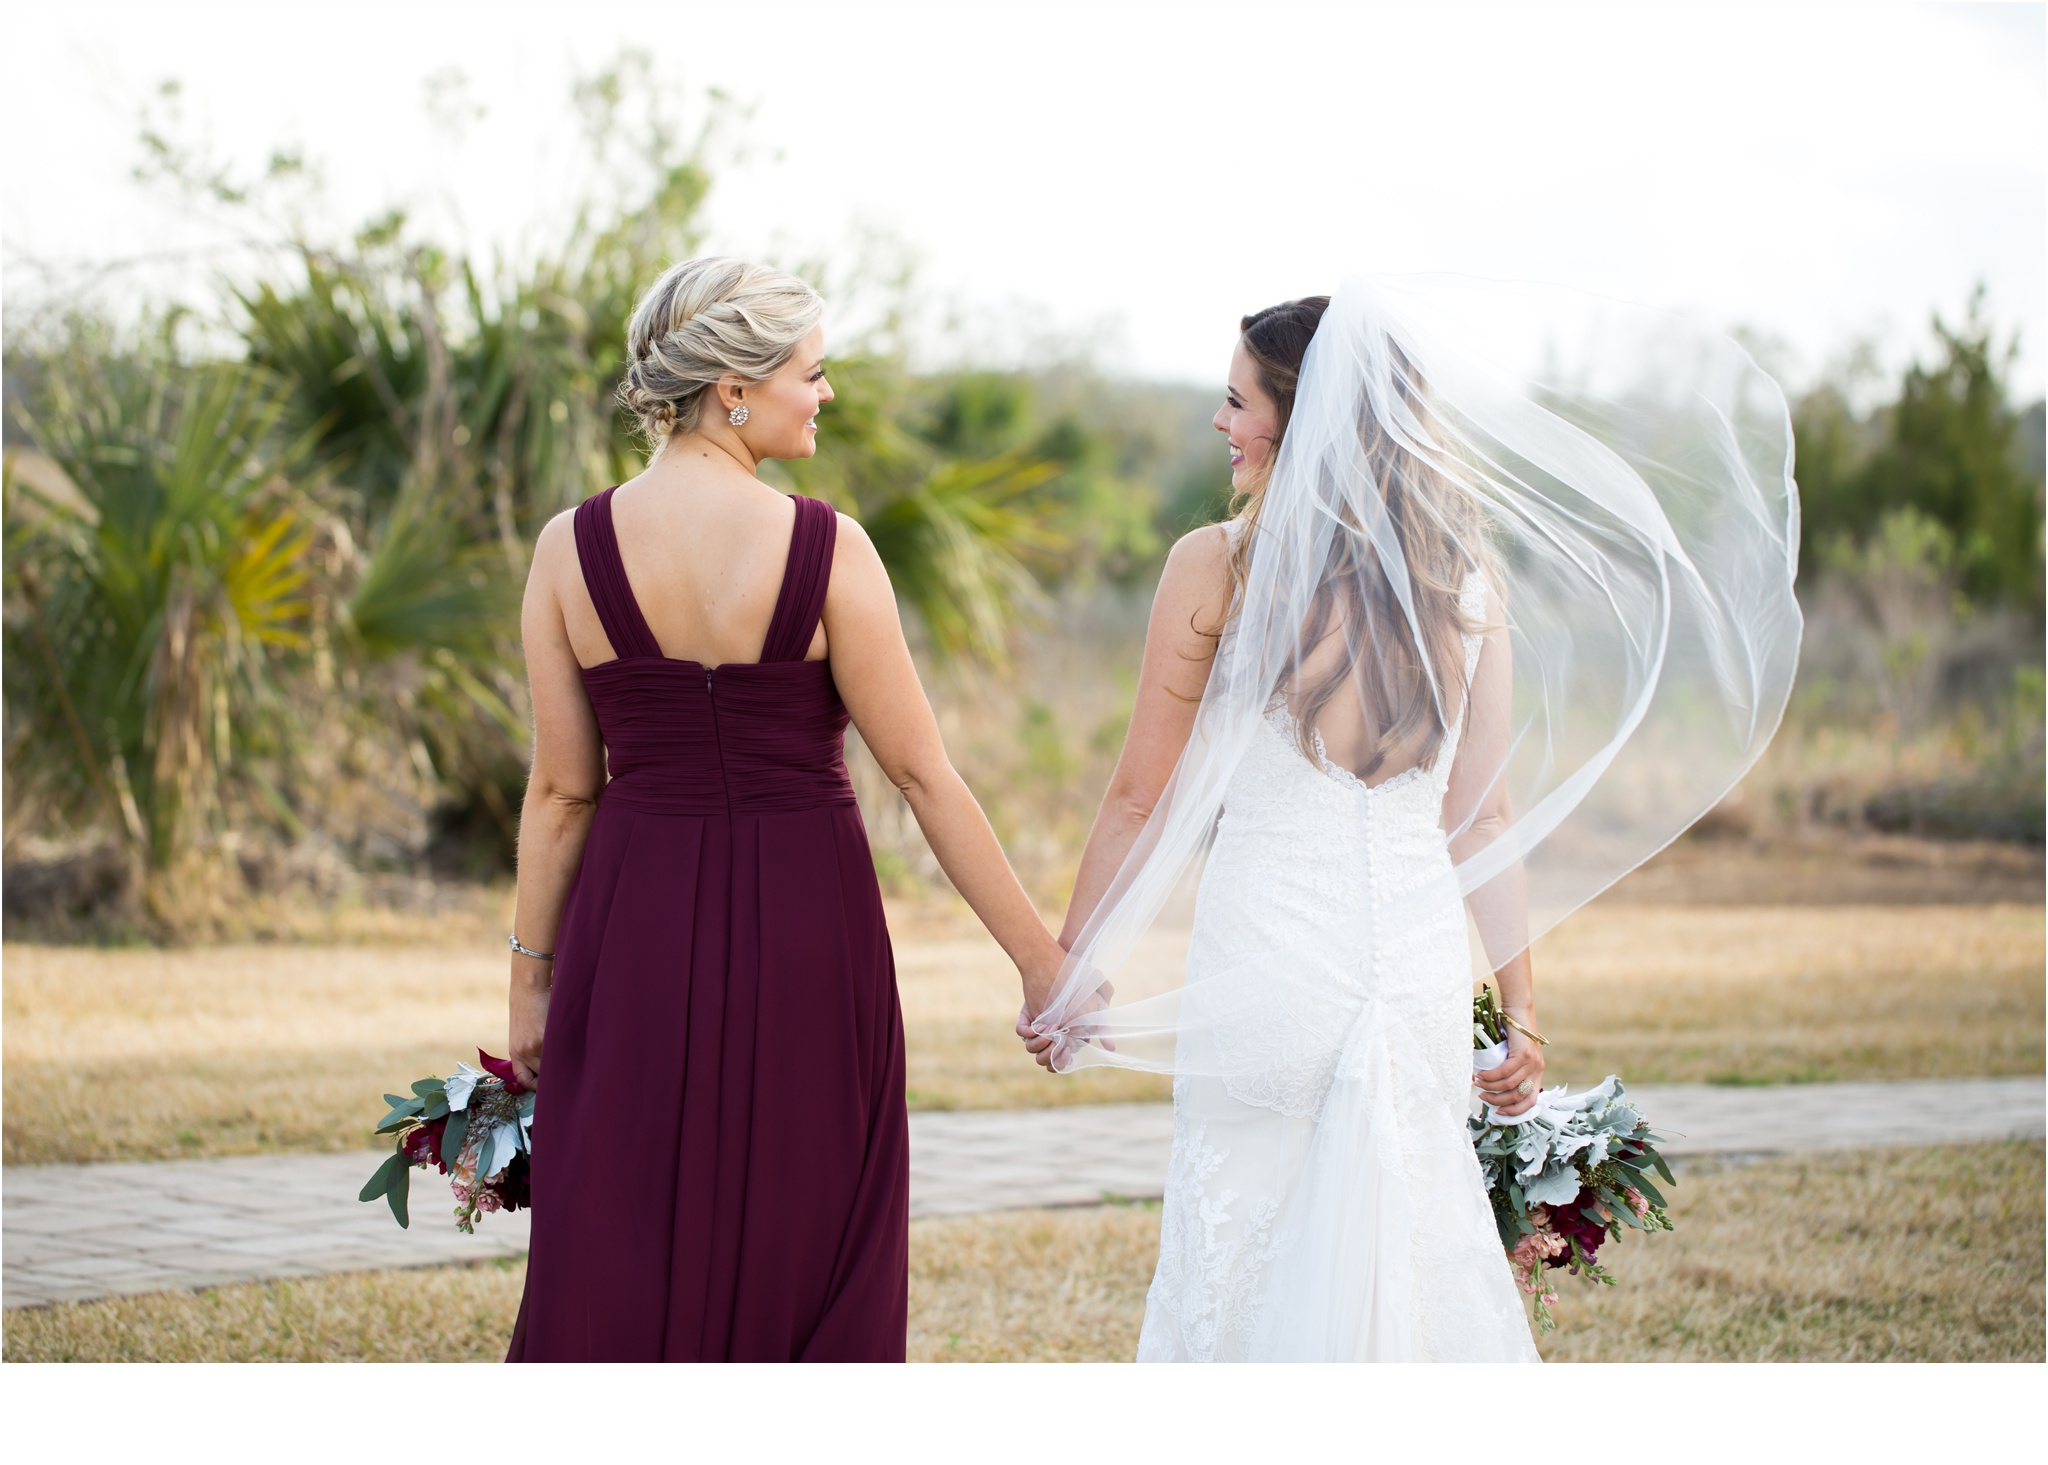 Rainey_Gregg_Photography_St._Simons_Island_Georgia_California_Wedding_Portrait_Photography_0866.jpg